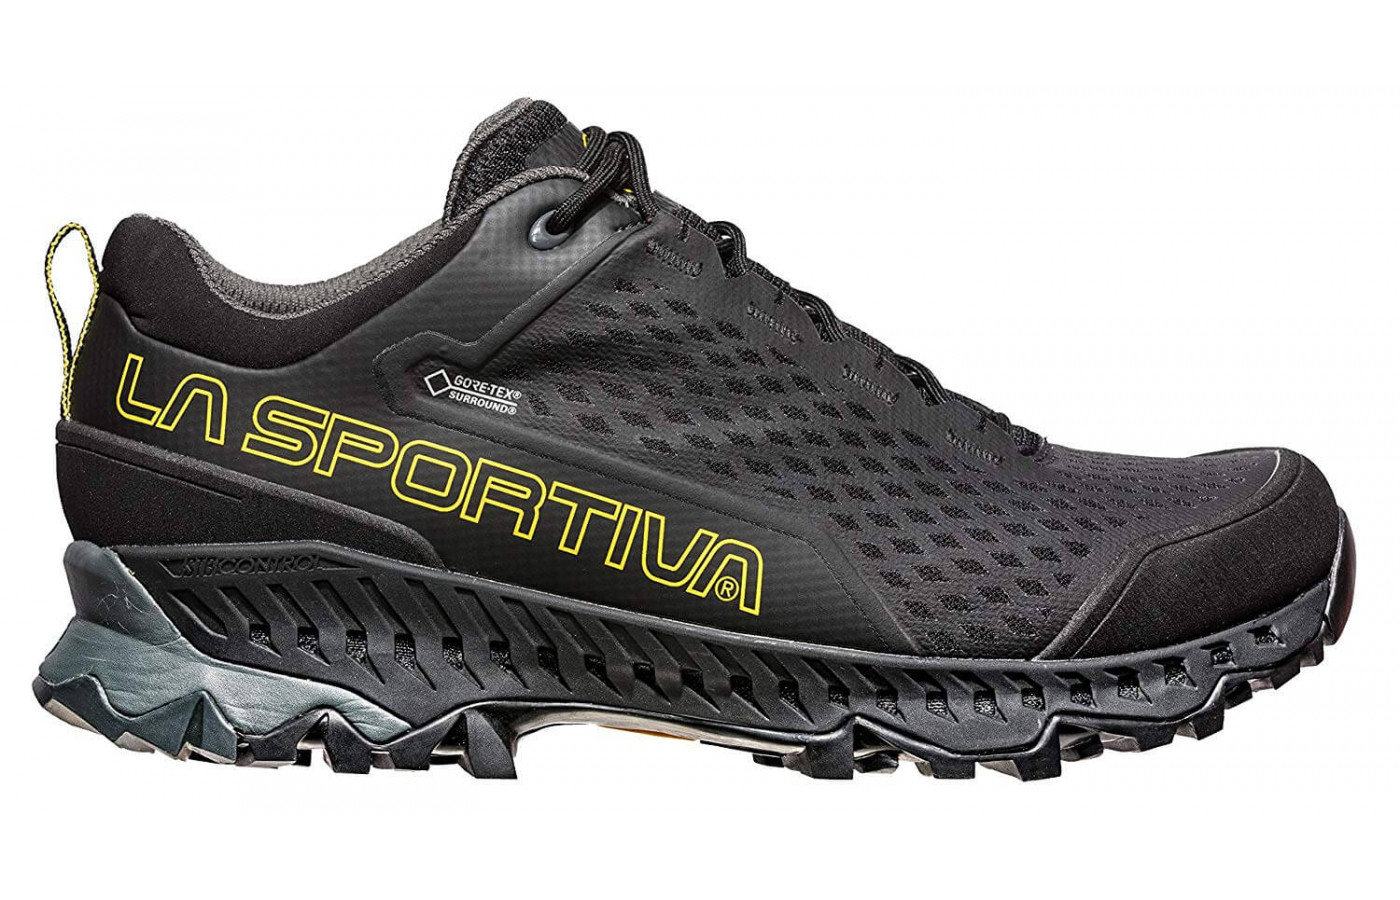 The Spire GTX's midsole is made with compression-molded EVA